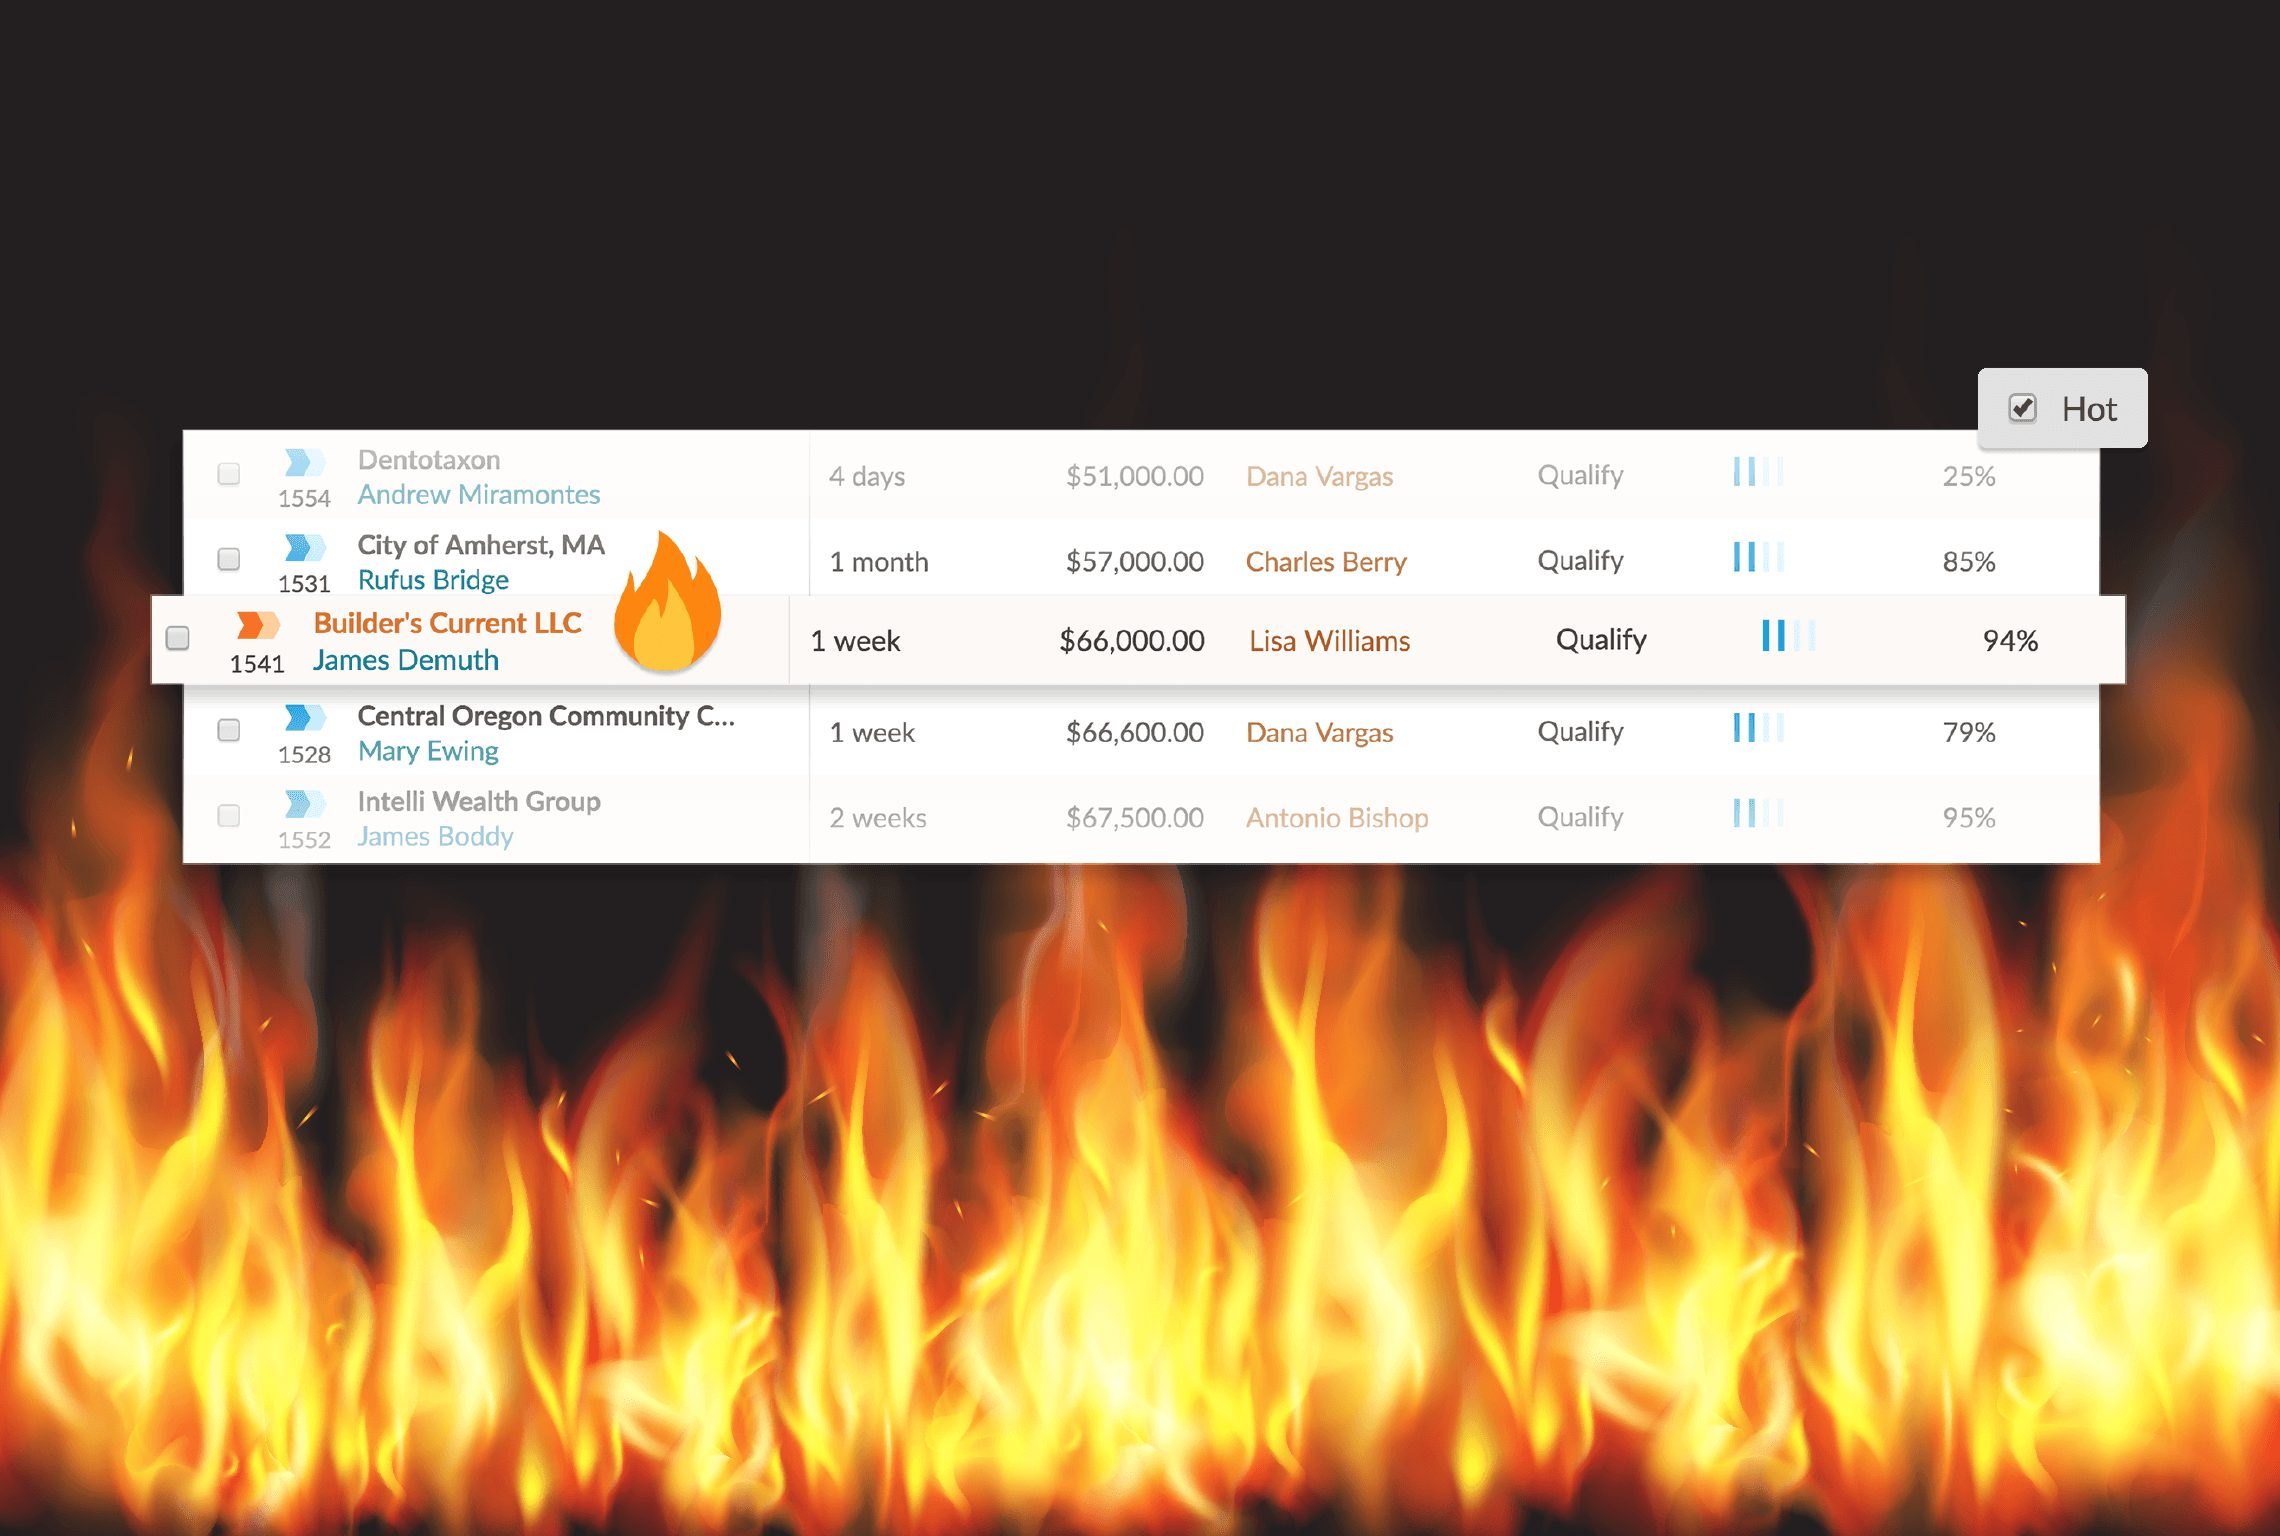 hot leads nutshell crm lead prioritization